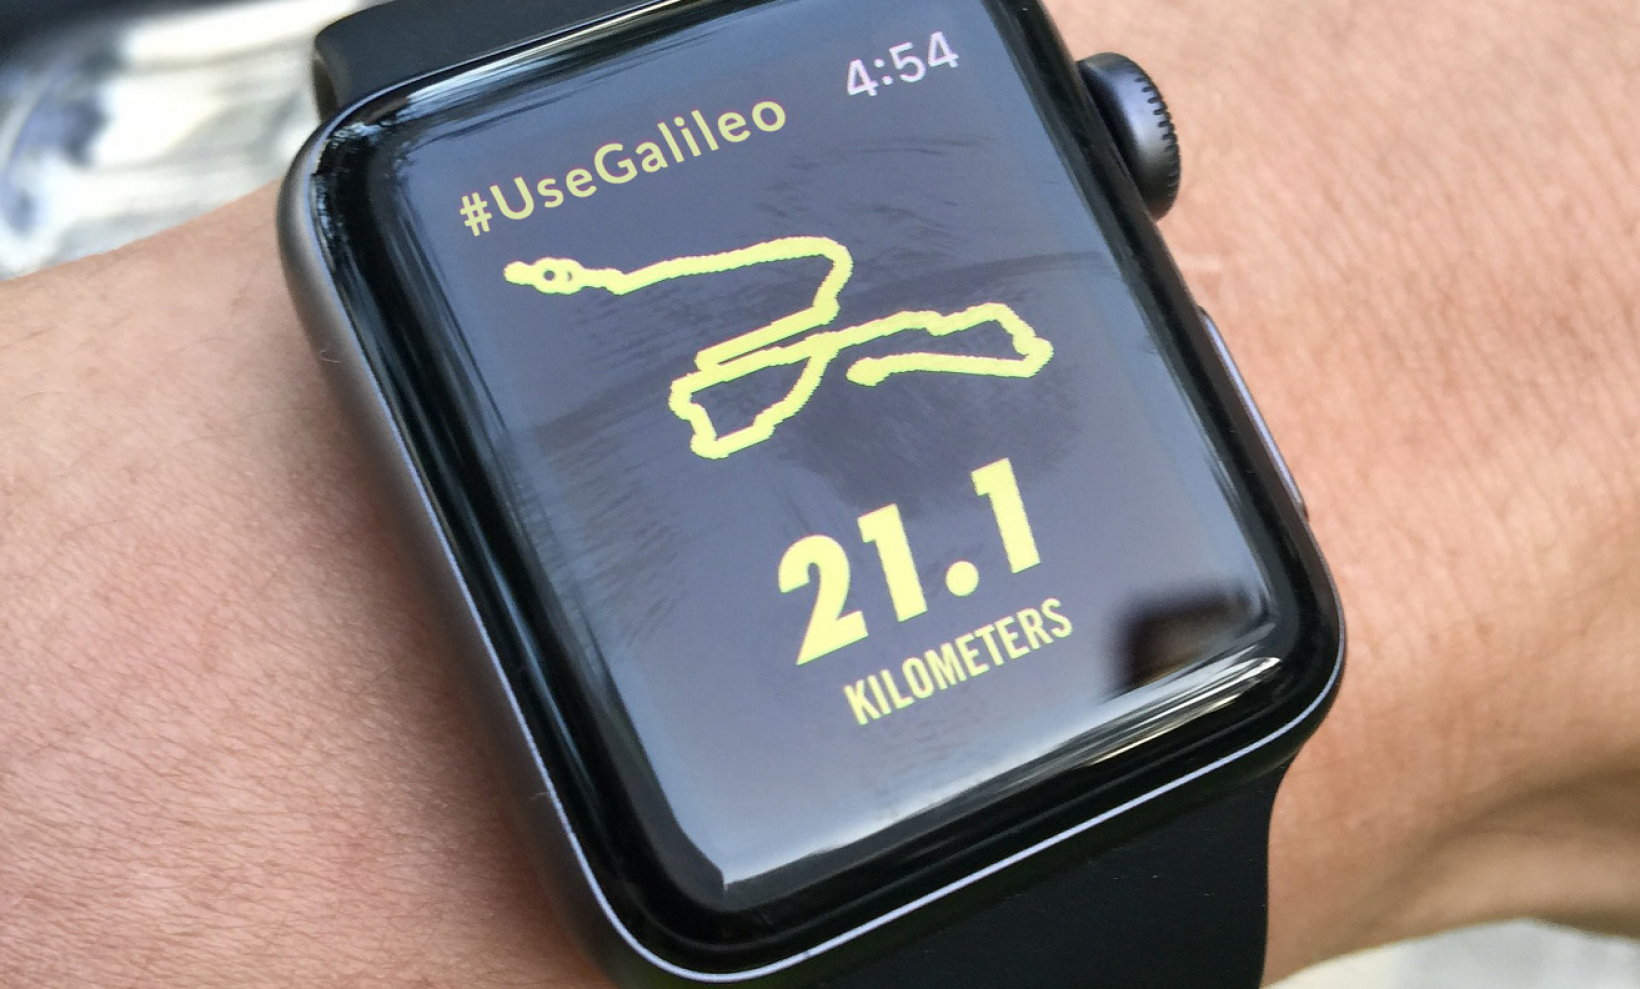 Wearables from Suunto, Garmin and Samsung were tested, with interesting results.